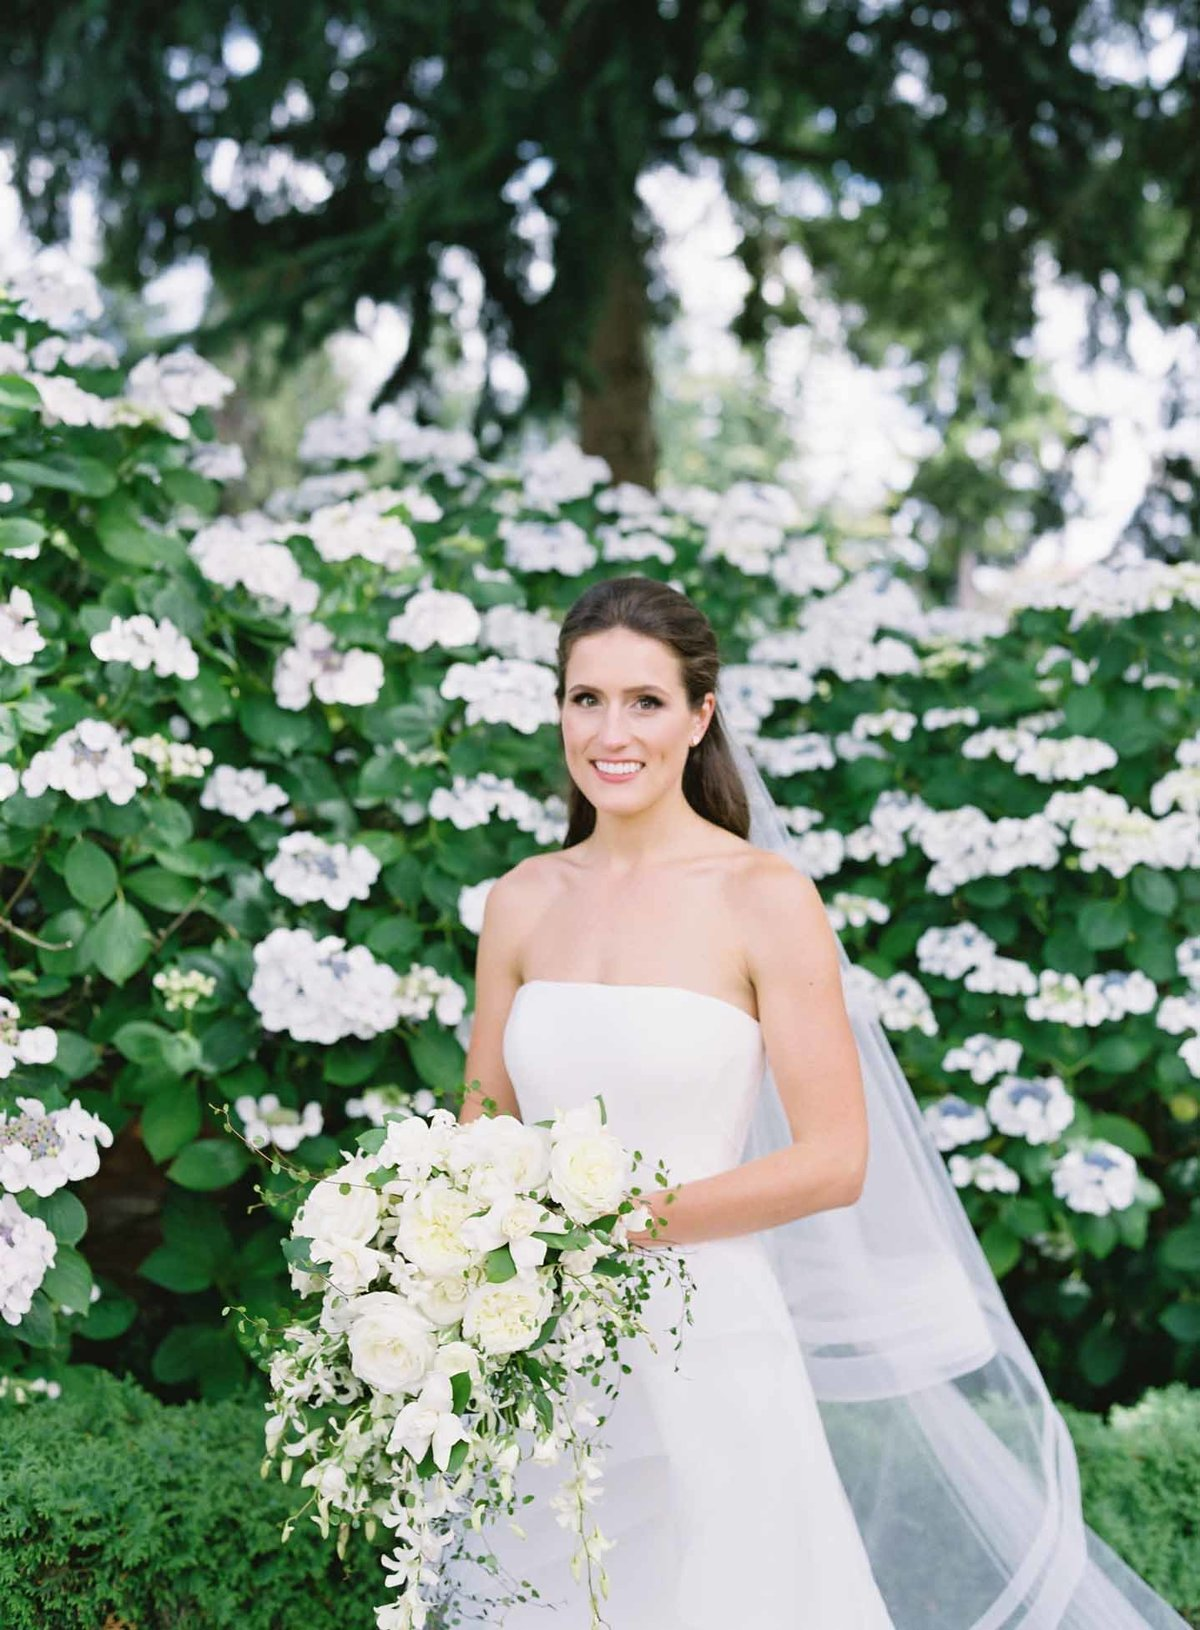 Kerry holding a lovely white cascade bouquet